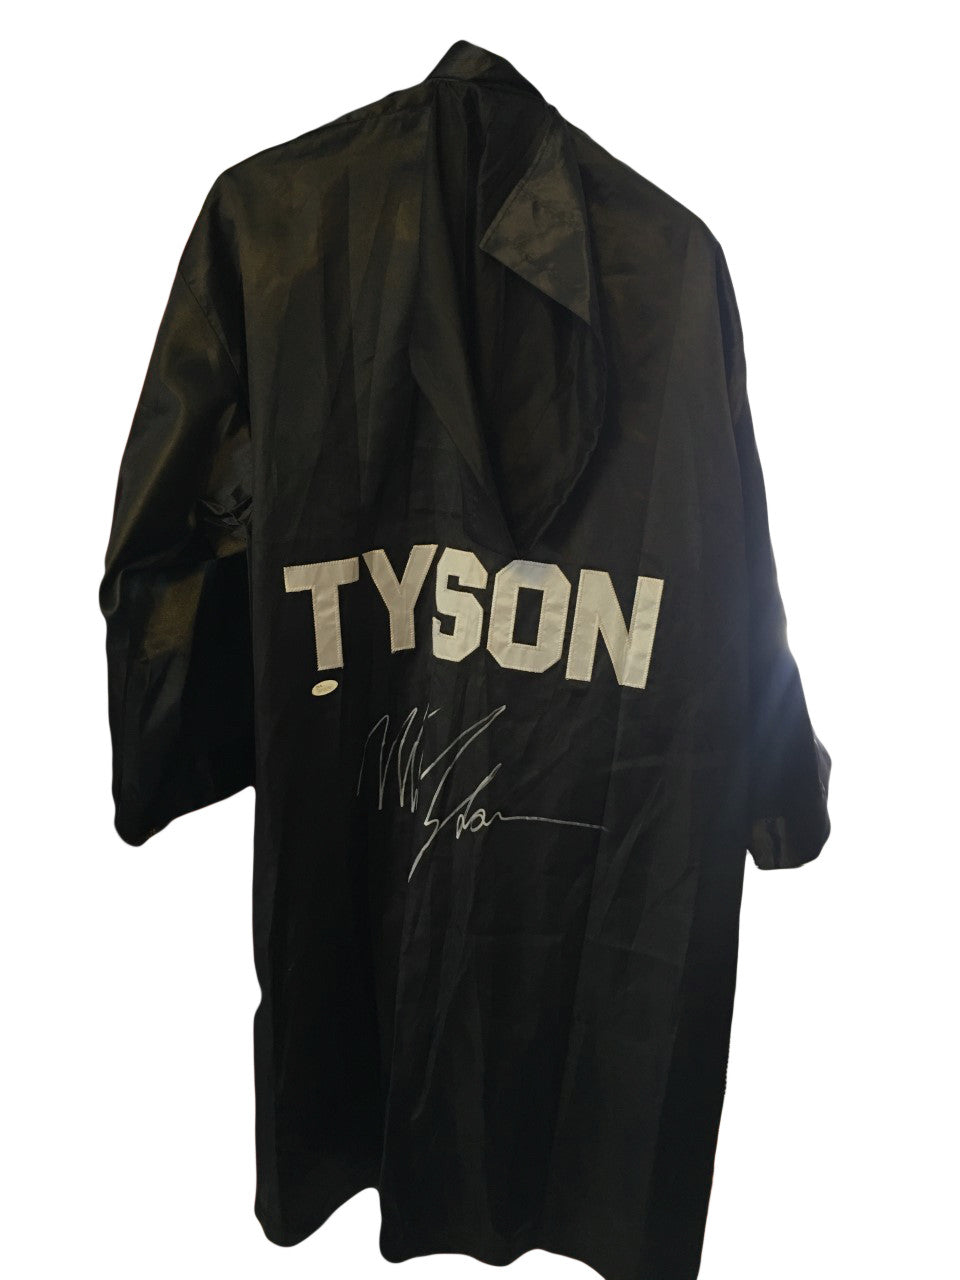 Mike Tyson Autographed Custom Made Black hooded Boxing Robe signed in Silver and JSA certified.